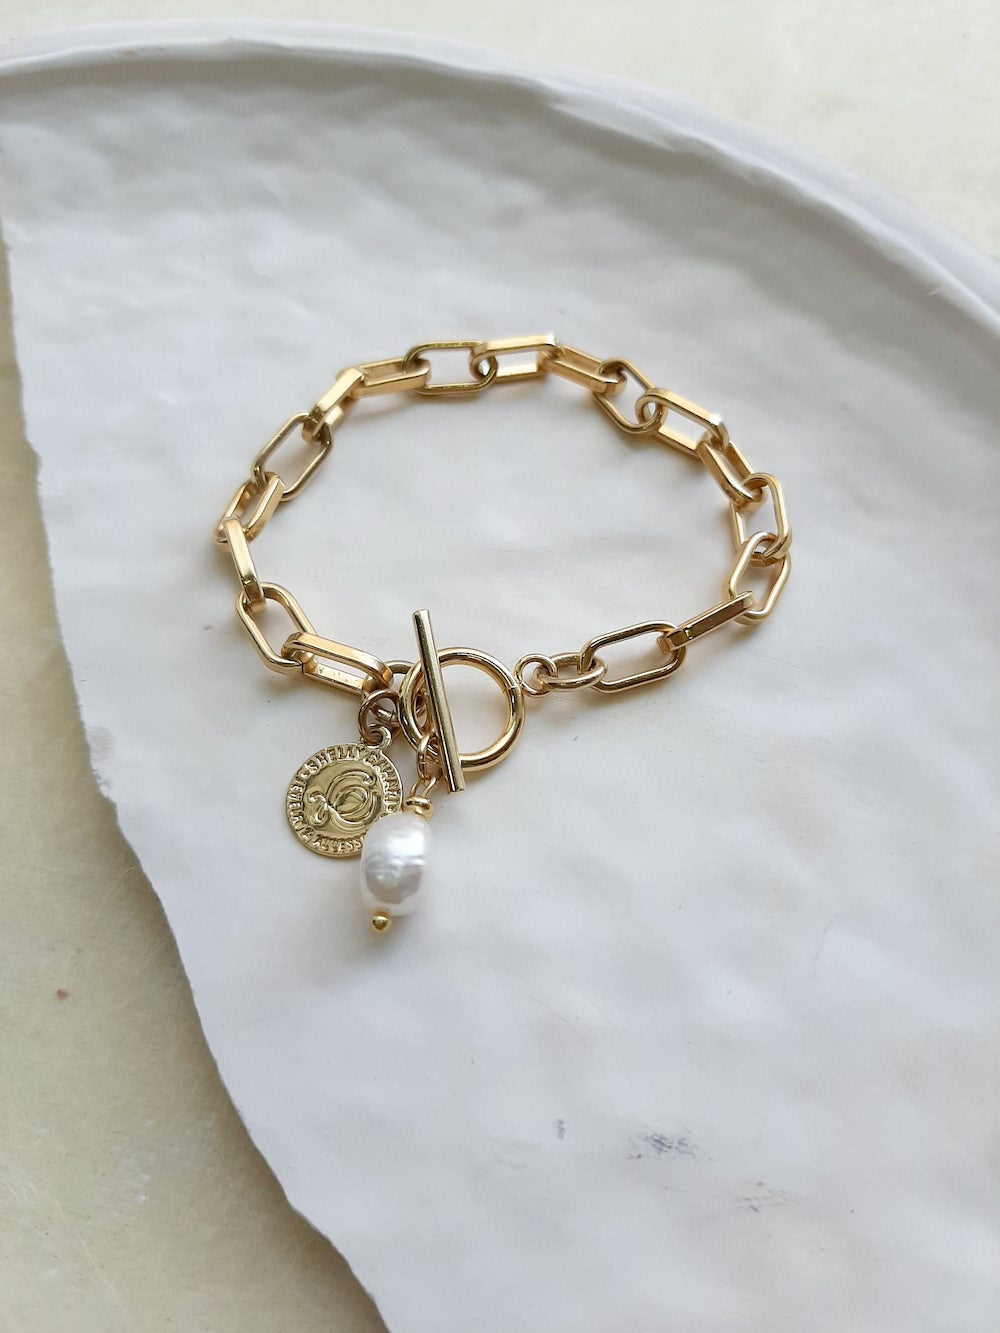 Gold chain link bracelet with bar clasp and drop pearl and gold disc charm by Shelly Dahari